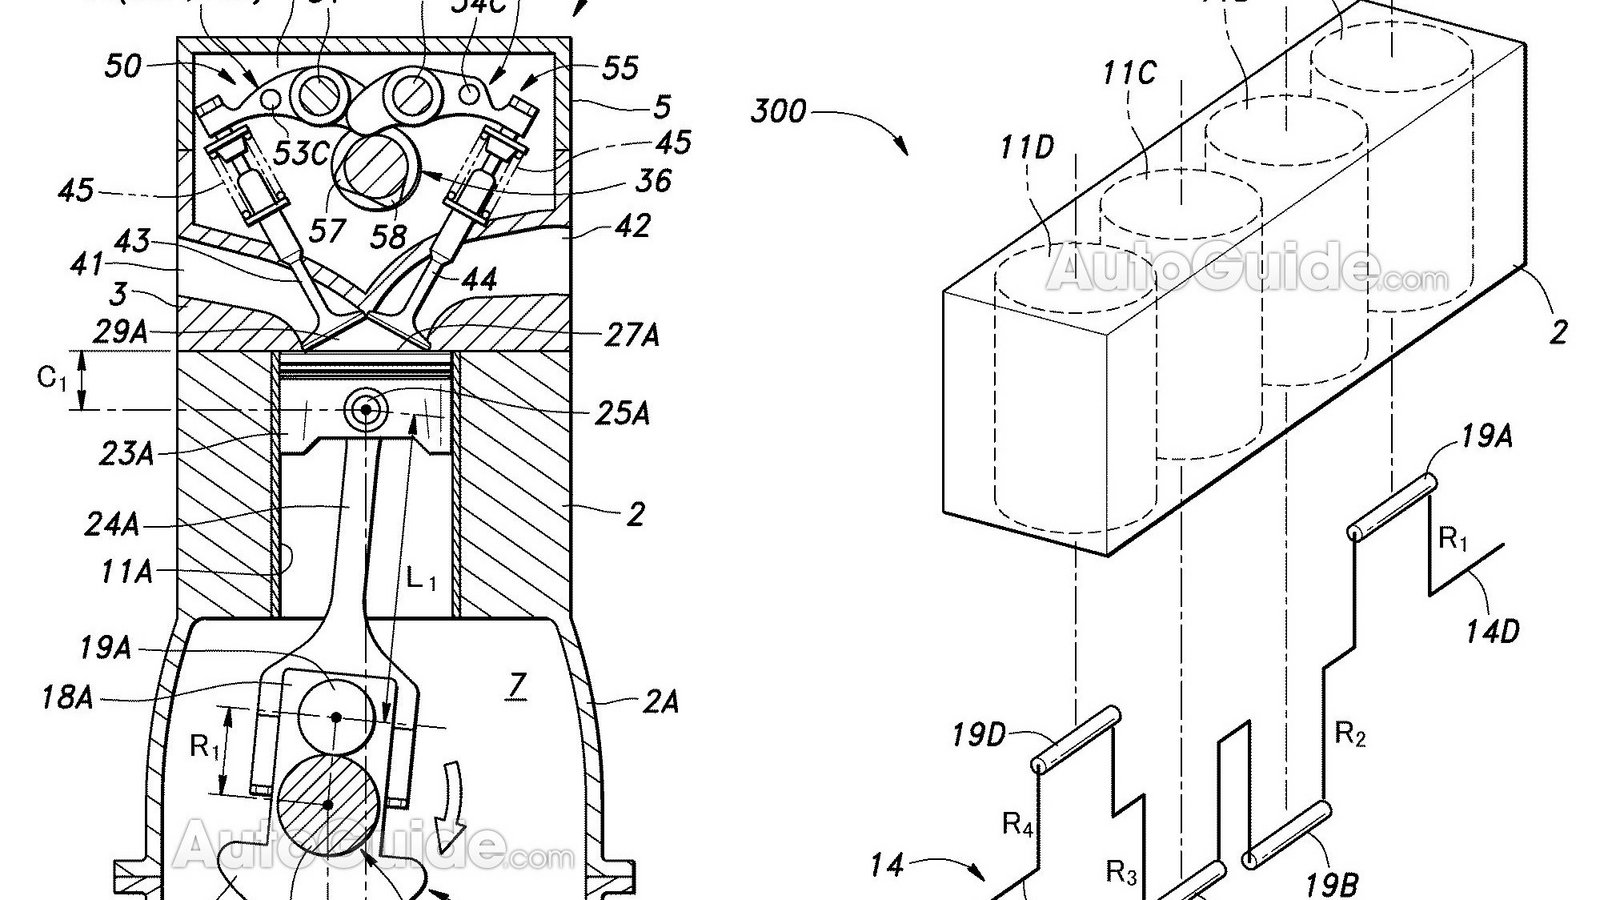 Honda Patents Engine With Different Sized Cylinders